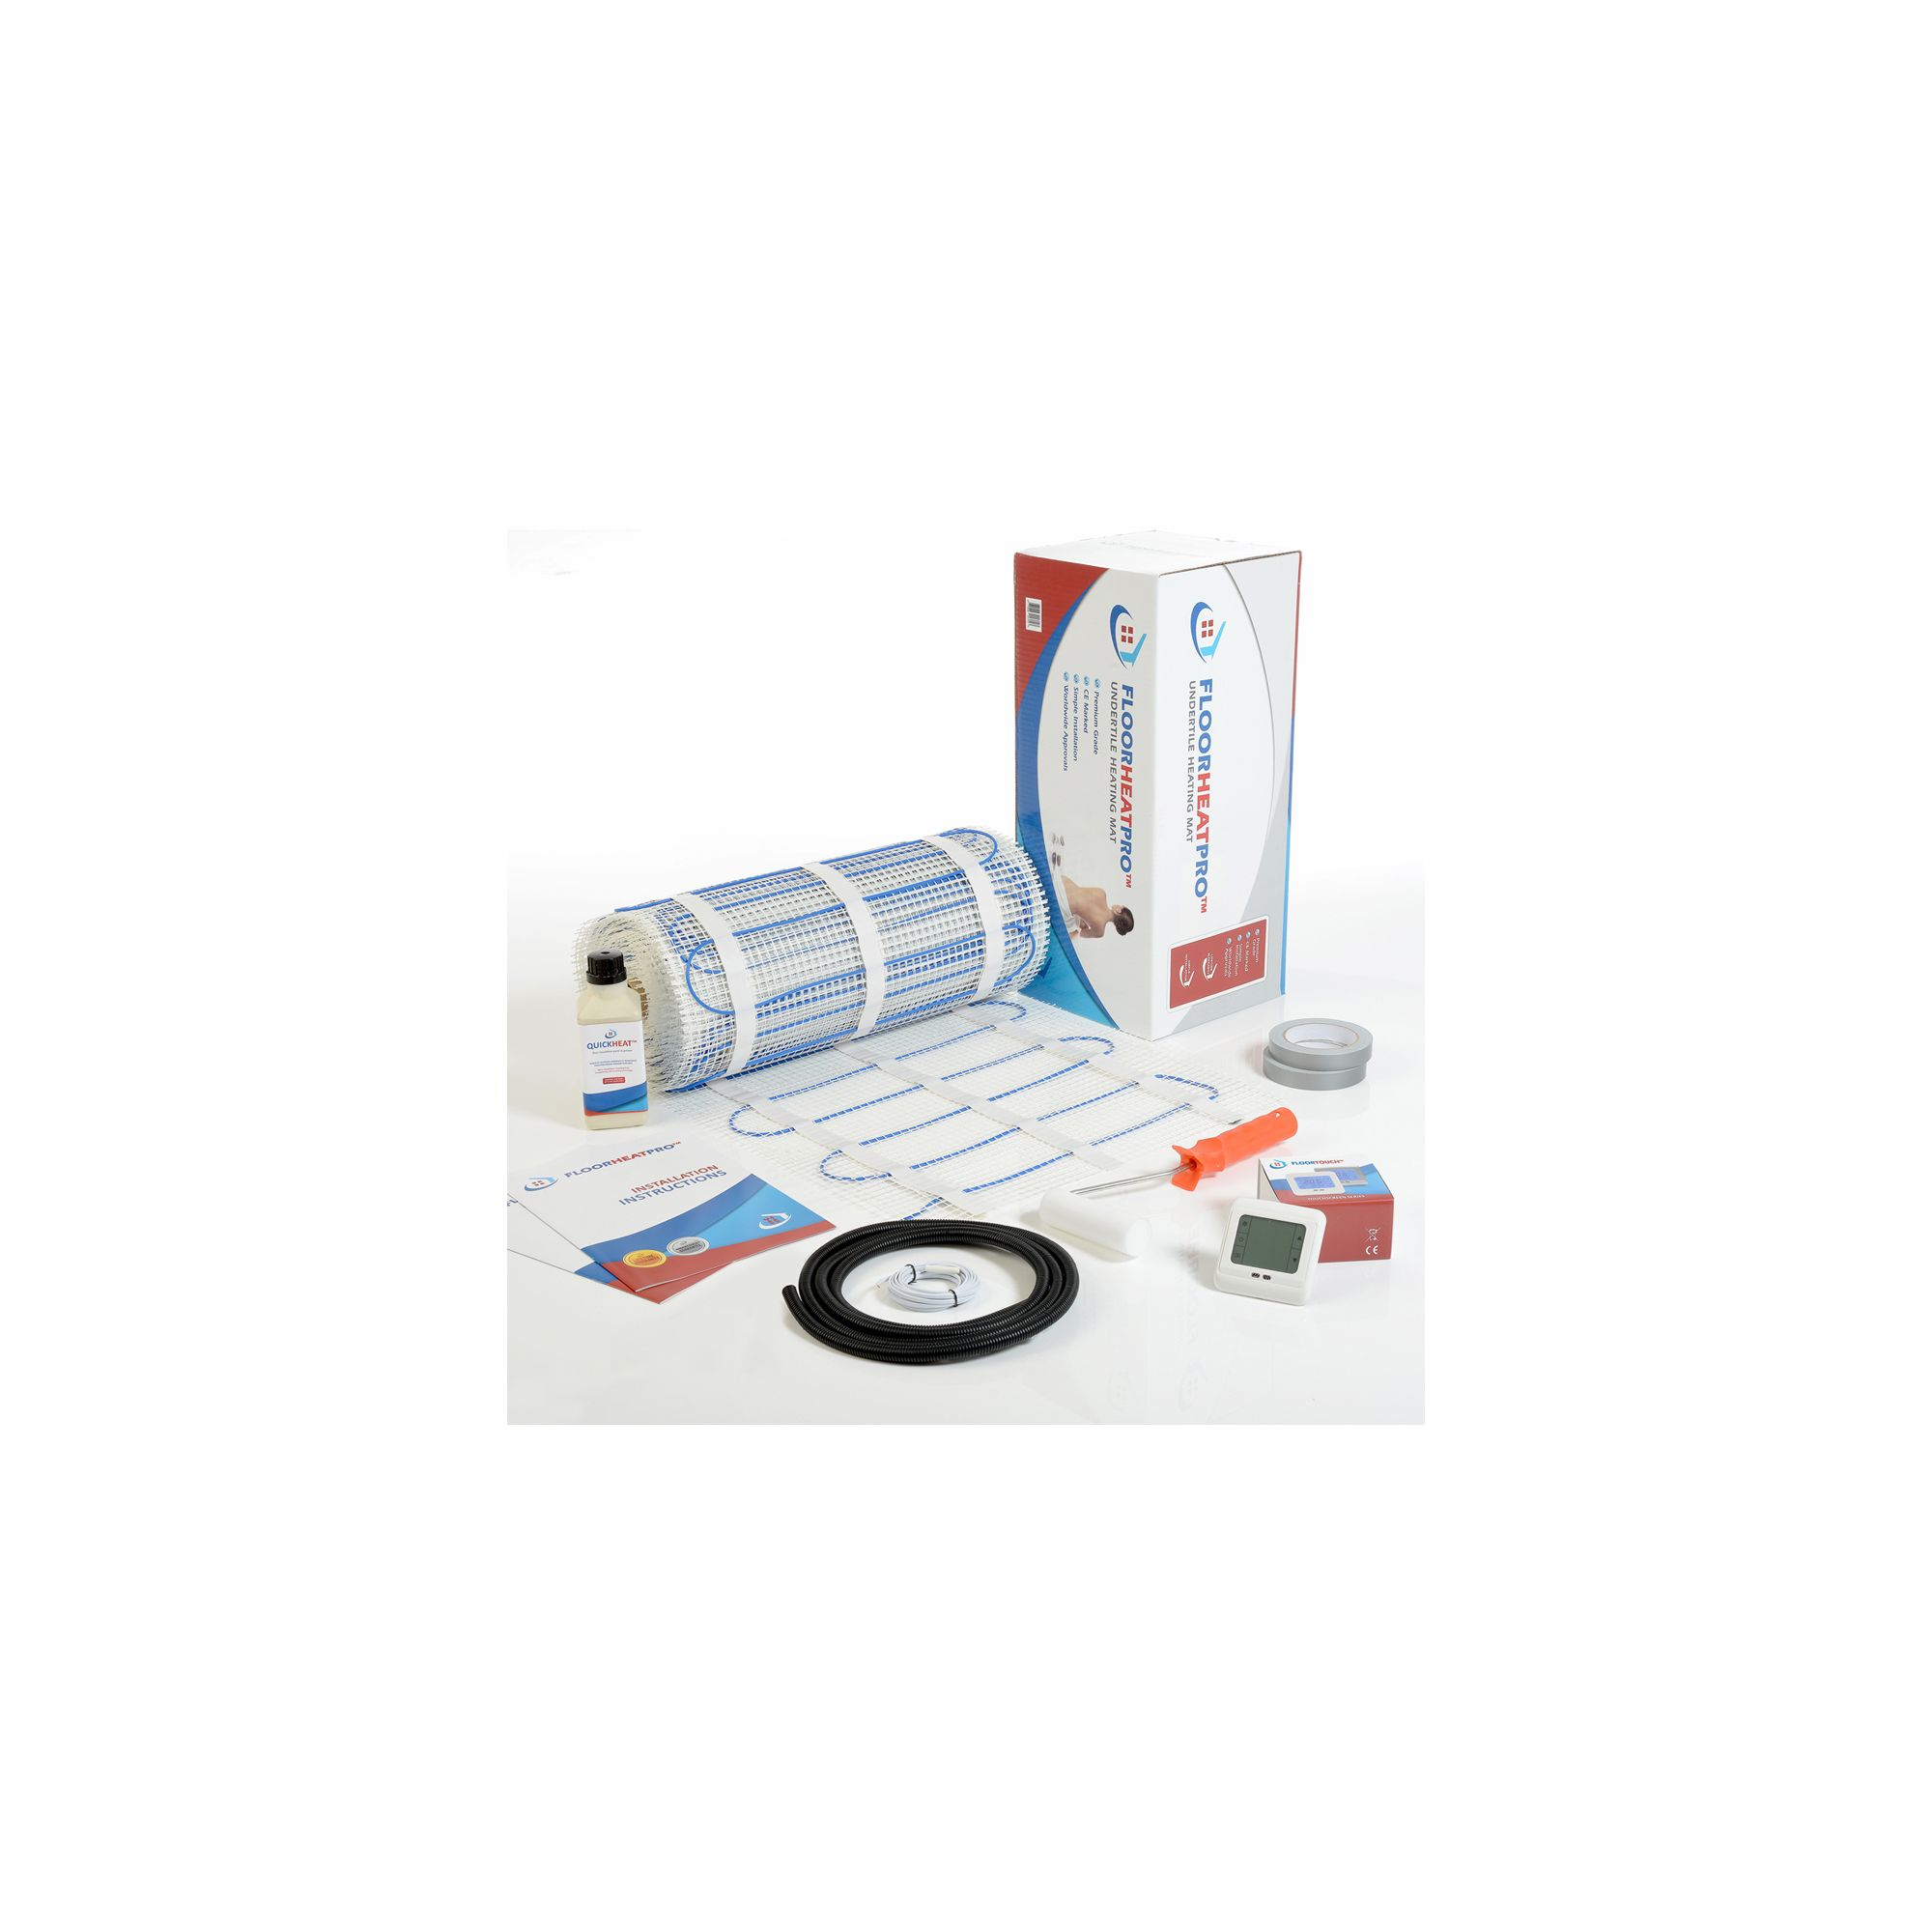 14.0m2 - Underfloor Electric Heating Kit 200w/m2 - Tiles at Tesco Direct